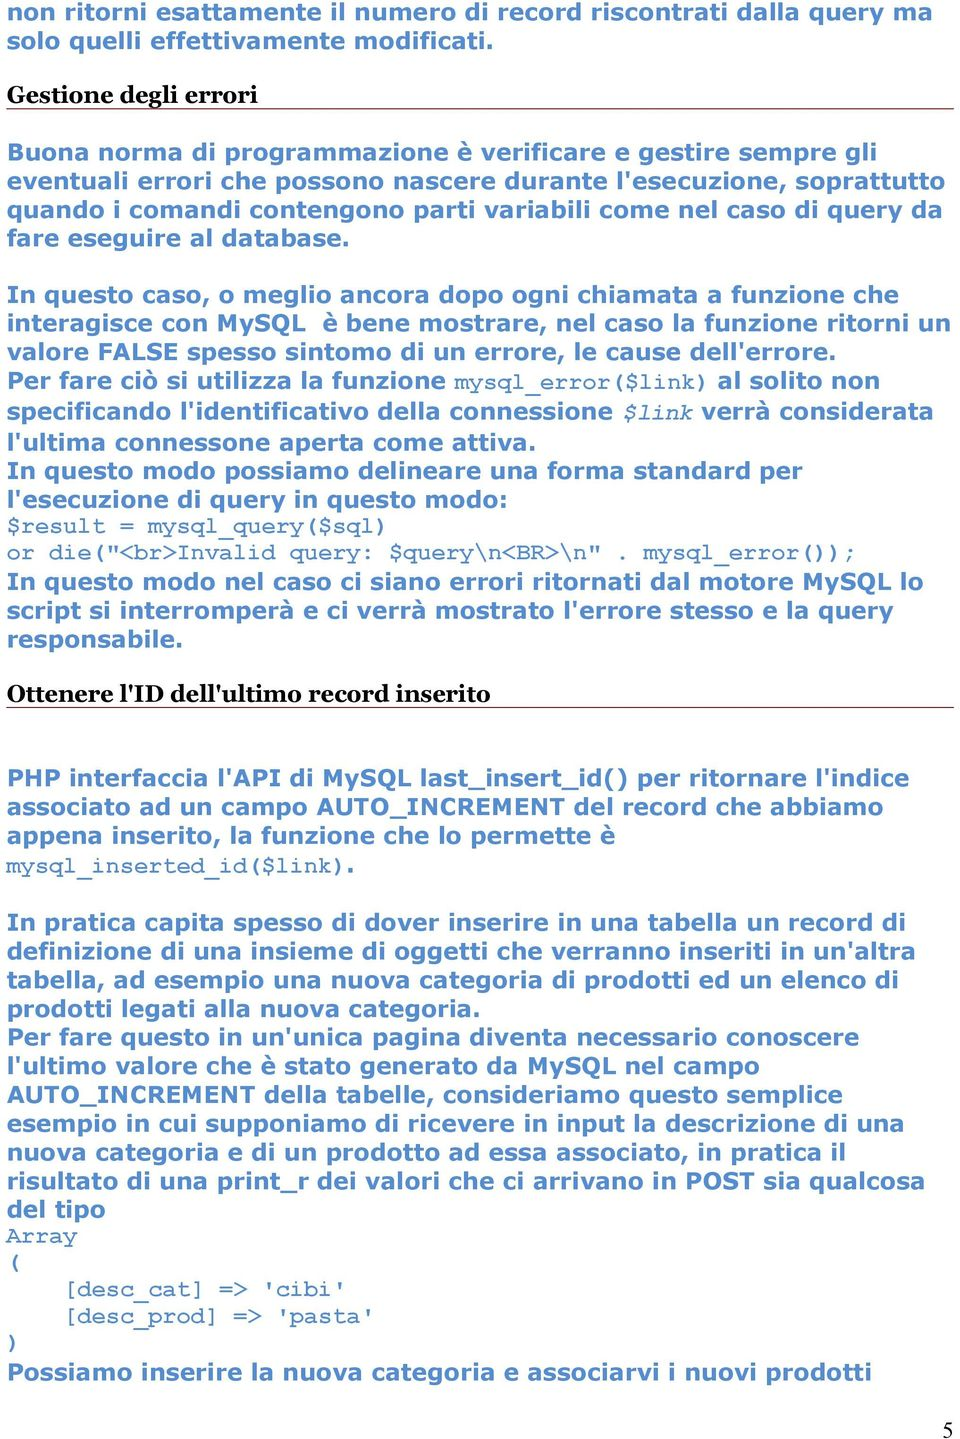 variabili come nel caso di query da fare eseguire al database.